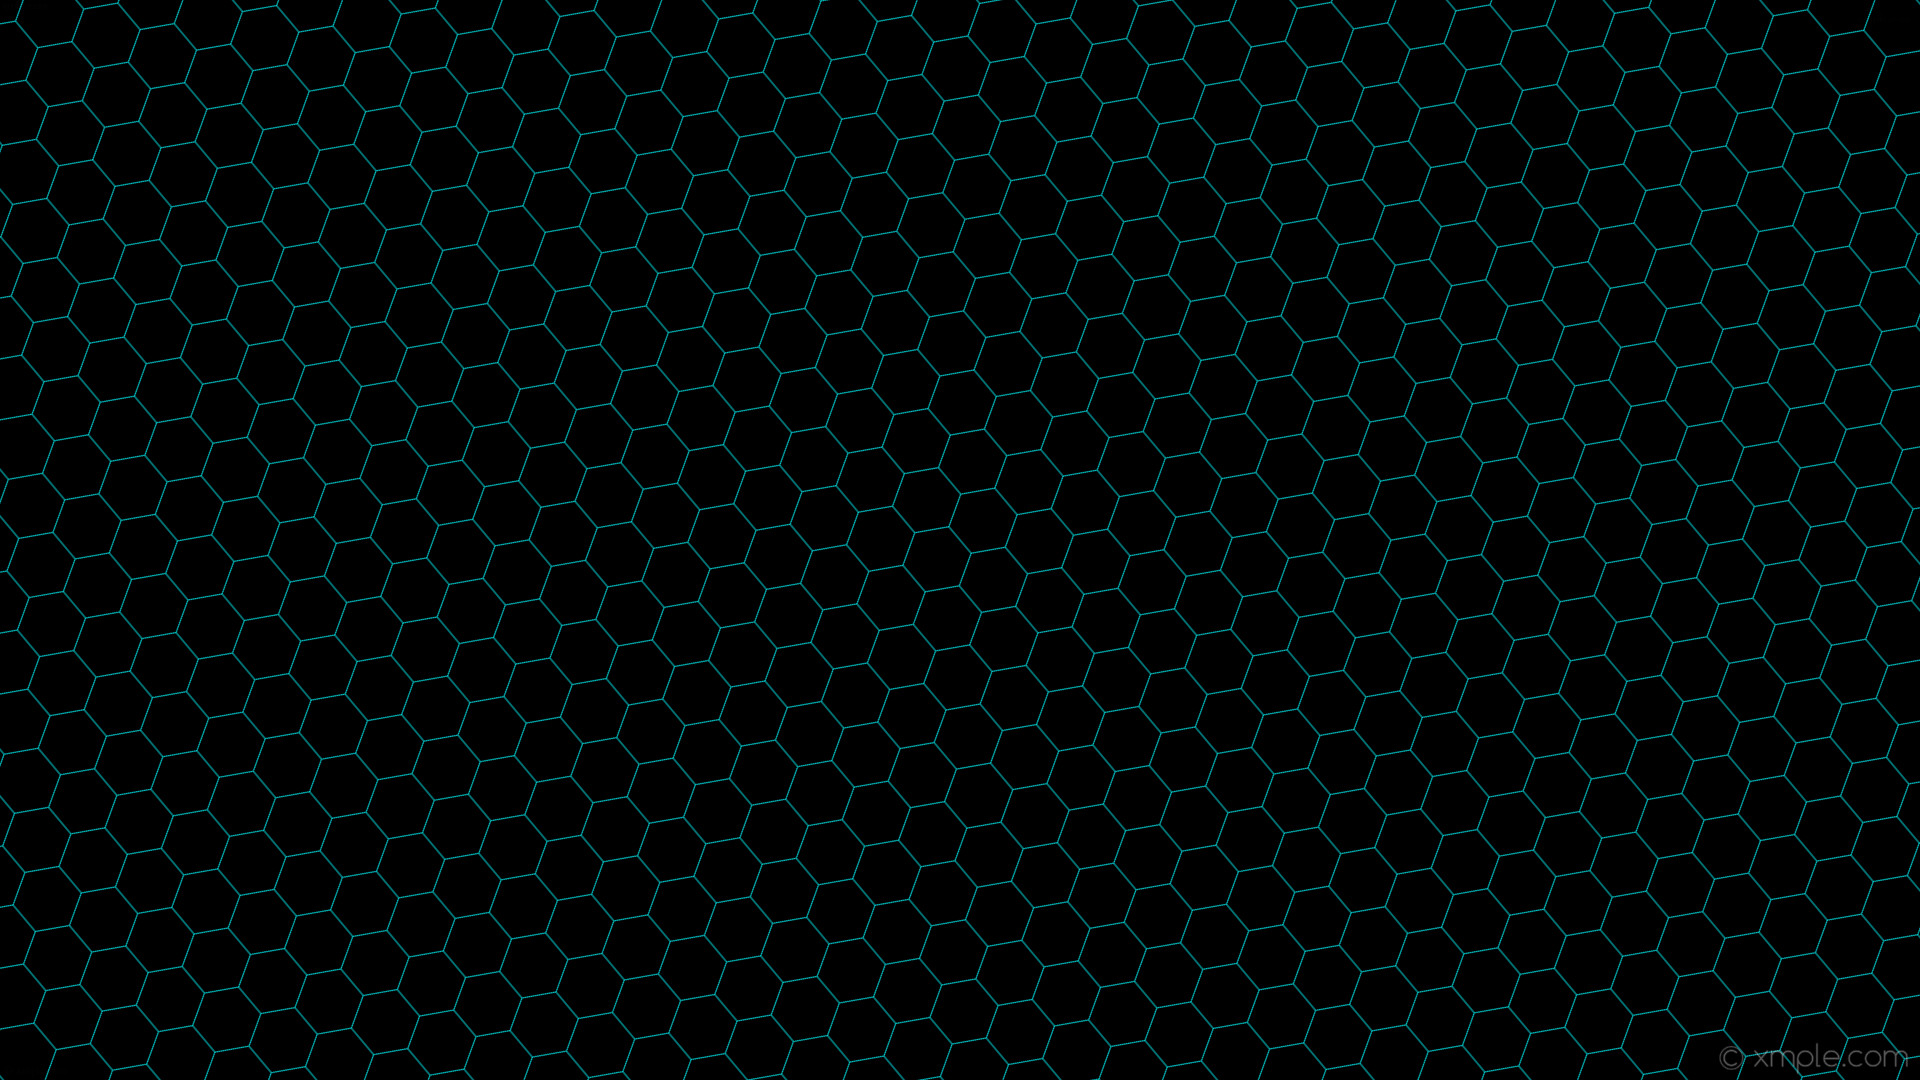 Res: 1920x1080, wallpaper honeycomb black blue hexagon beehive dark turquoise #000000  #00ced1 diagonal 40° 1px